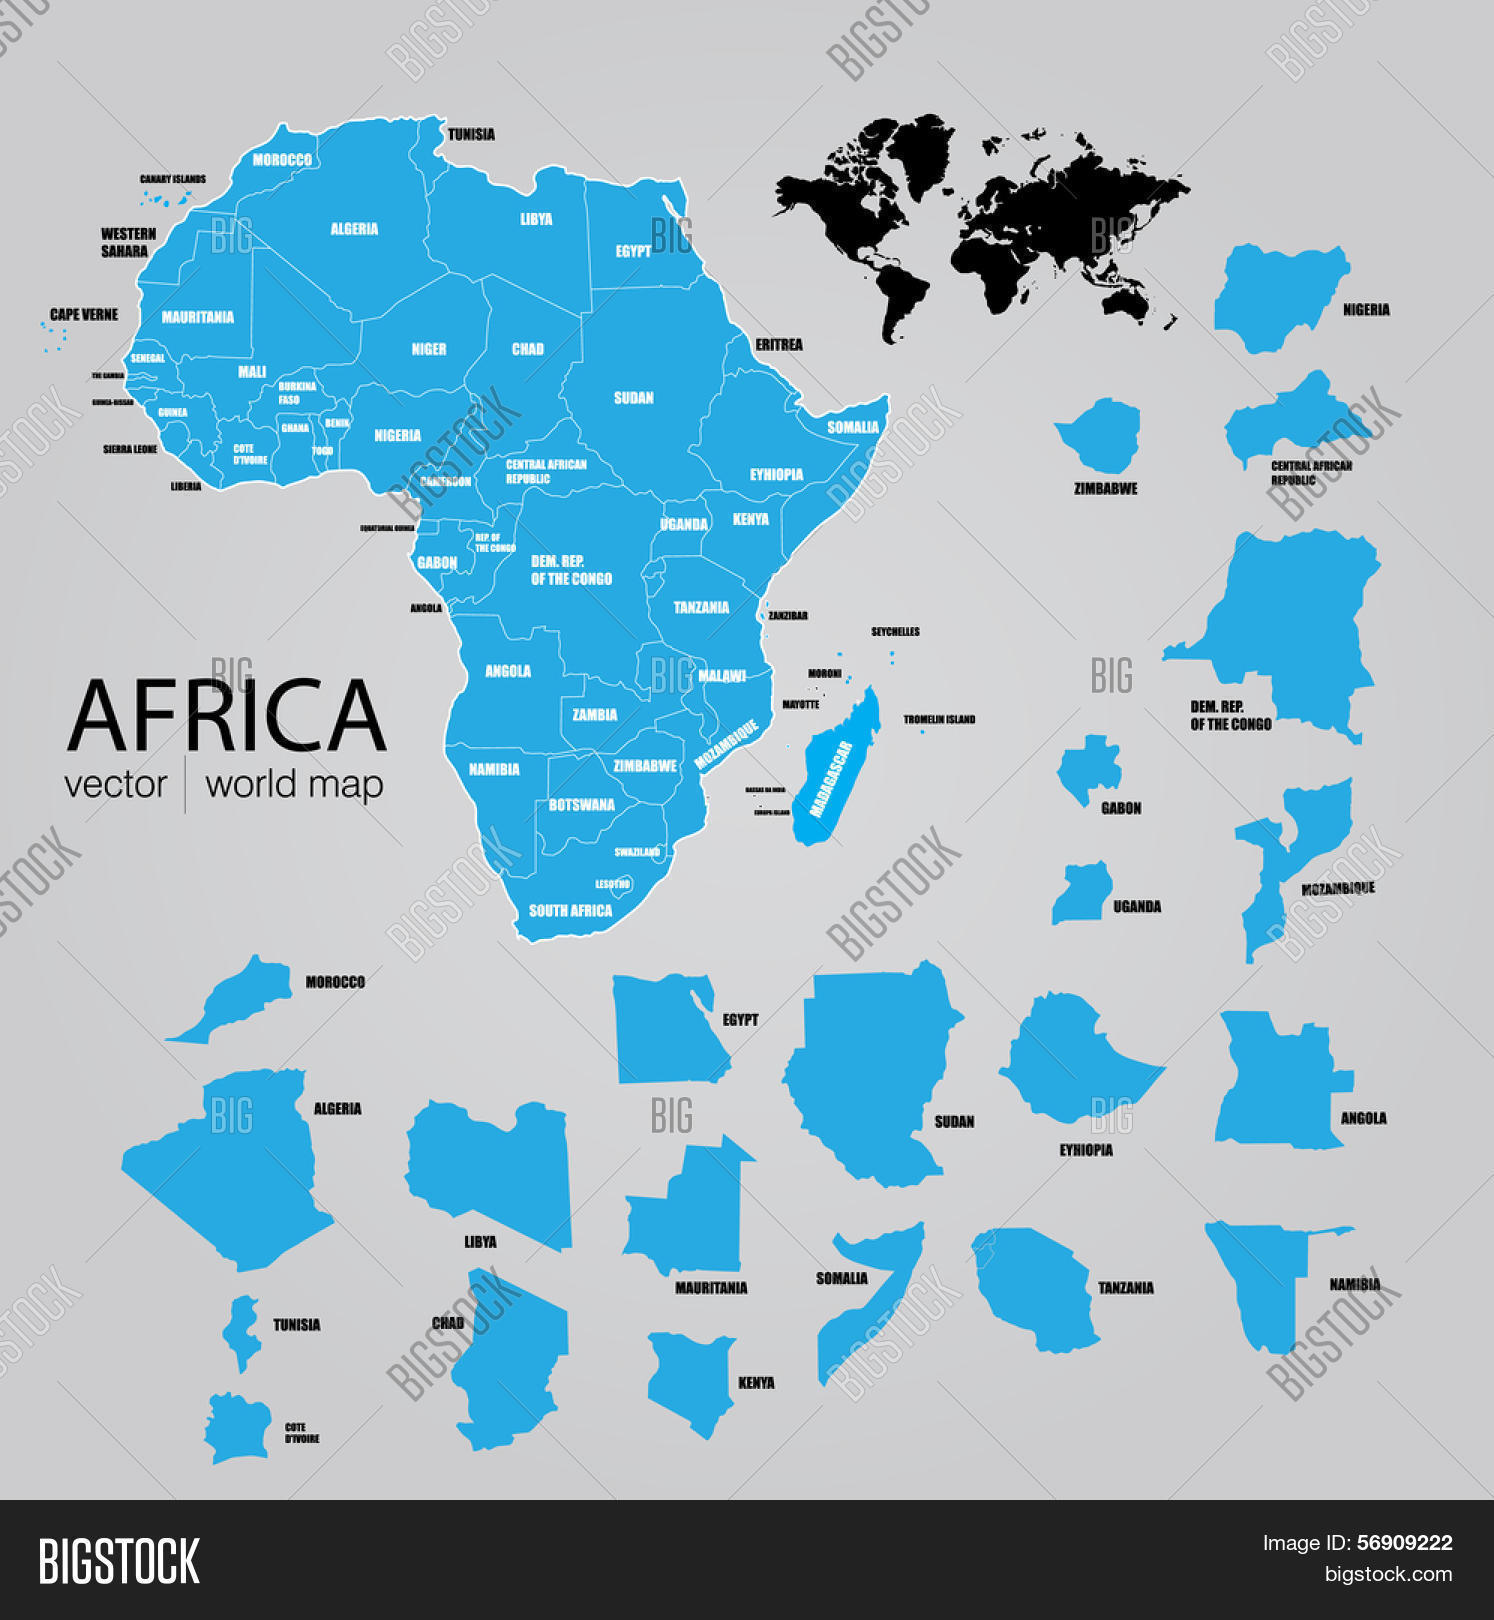 map of africa vector Map Africa Vector Vector Photo Free Trial Bigstock map of africa vector